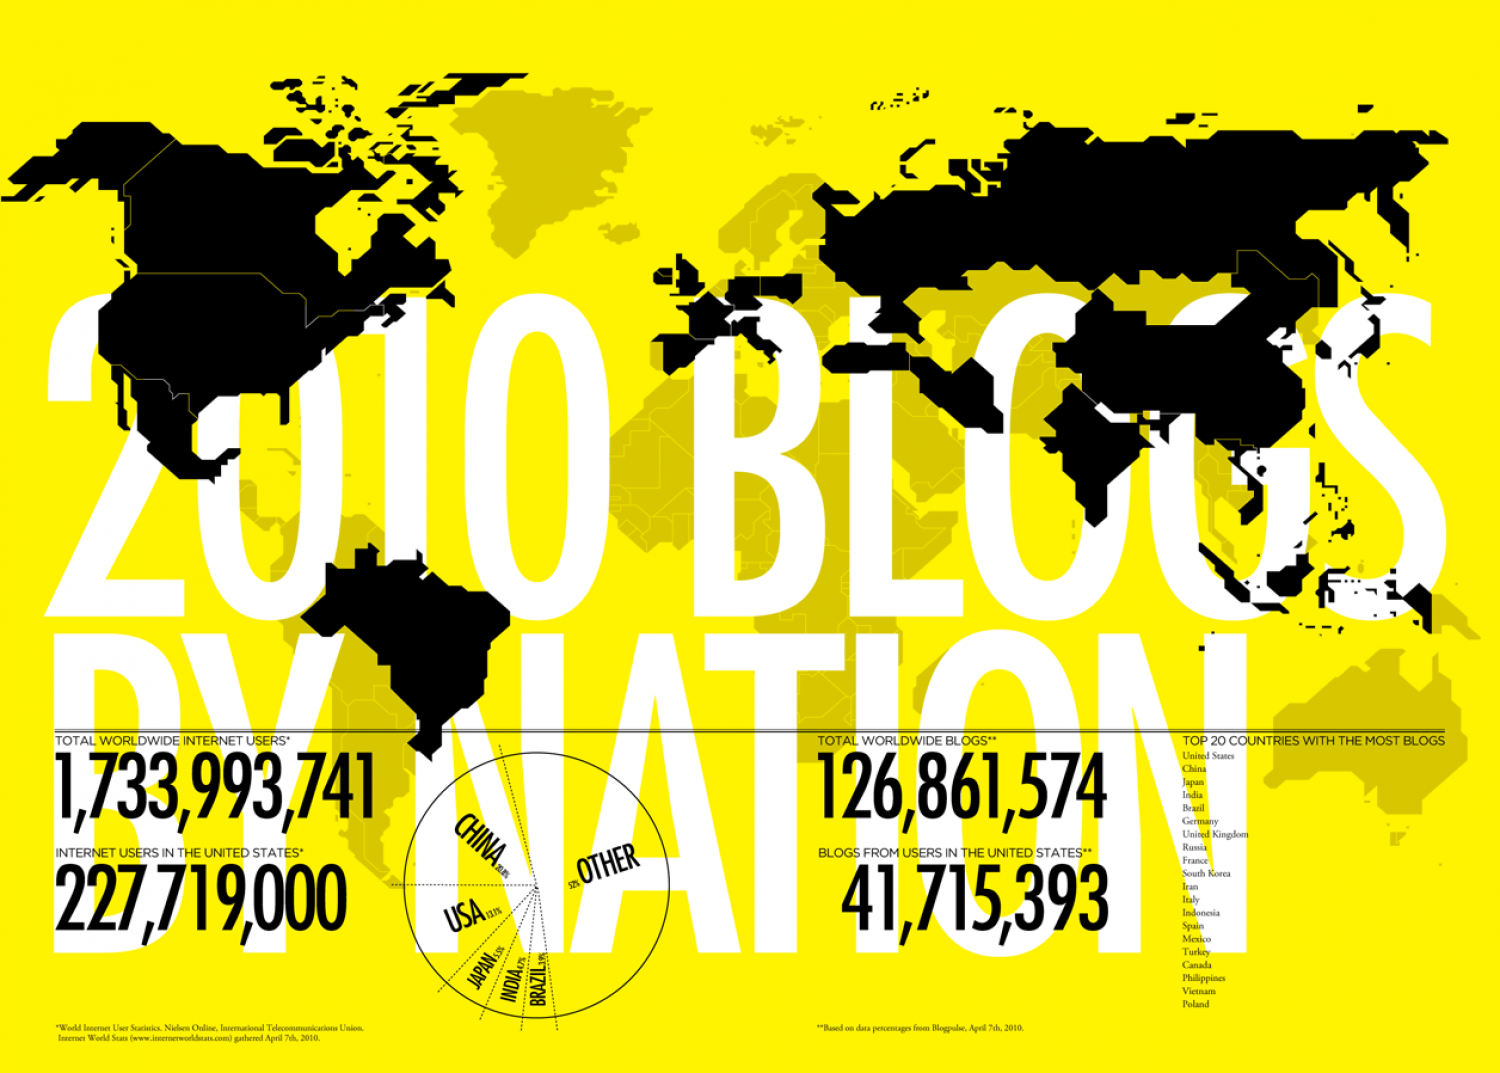 Blogs By Nation - 2010 Infographic